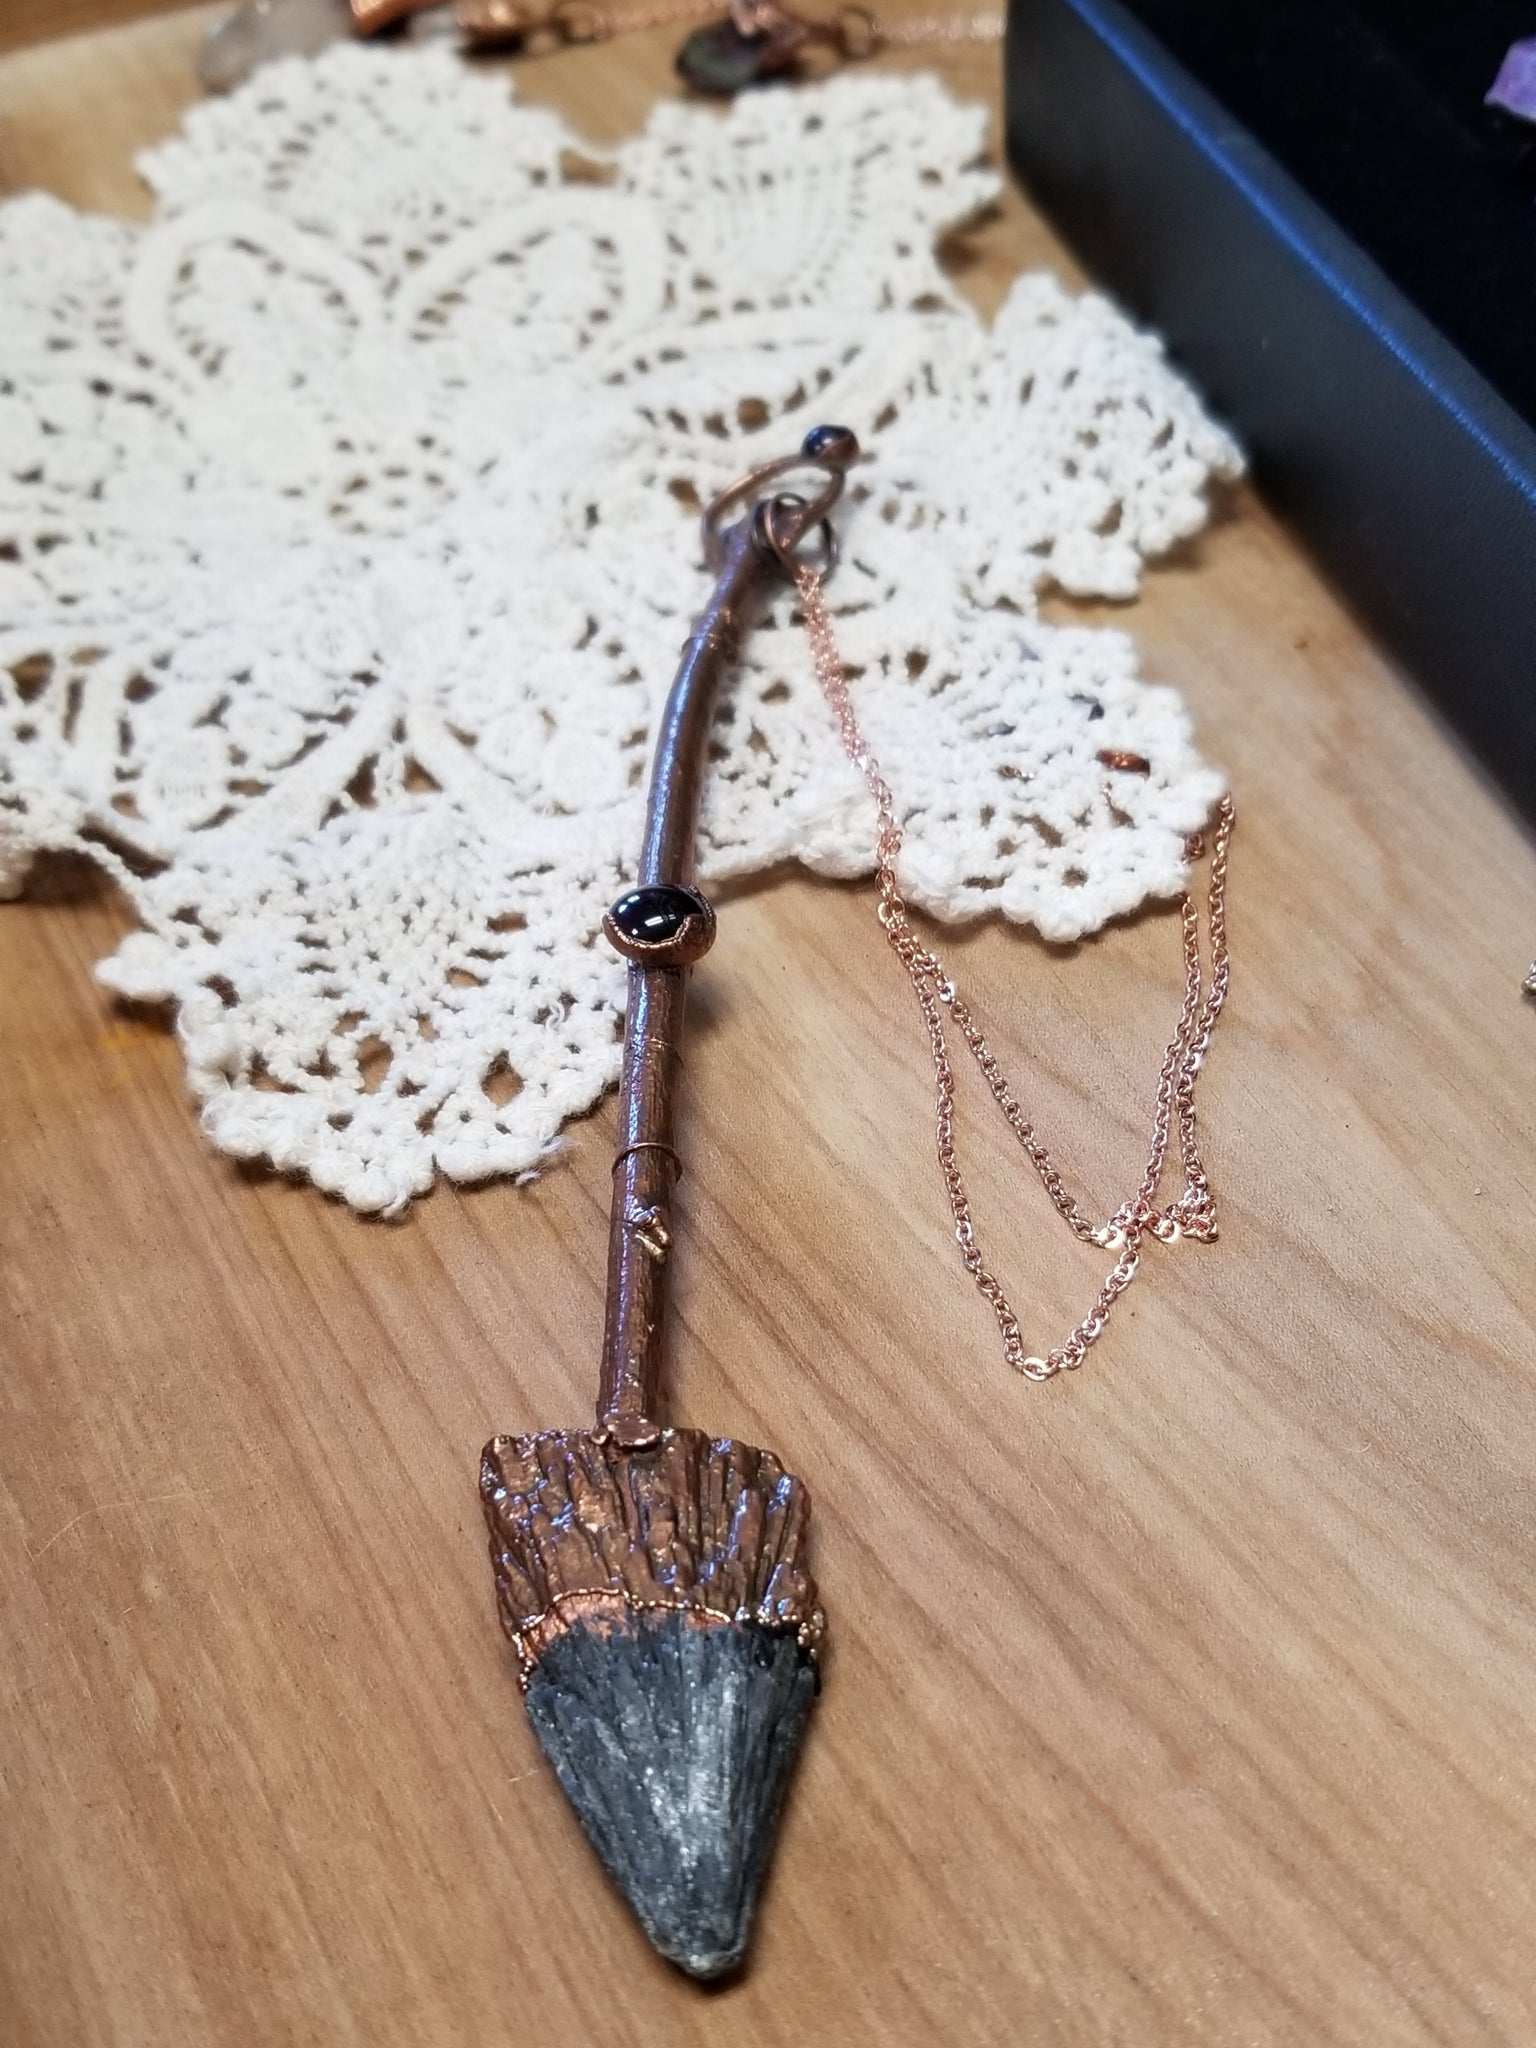 Handcrafted Copper Broom Necklaces - Tree Of Life Shoppe